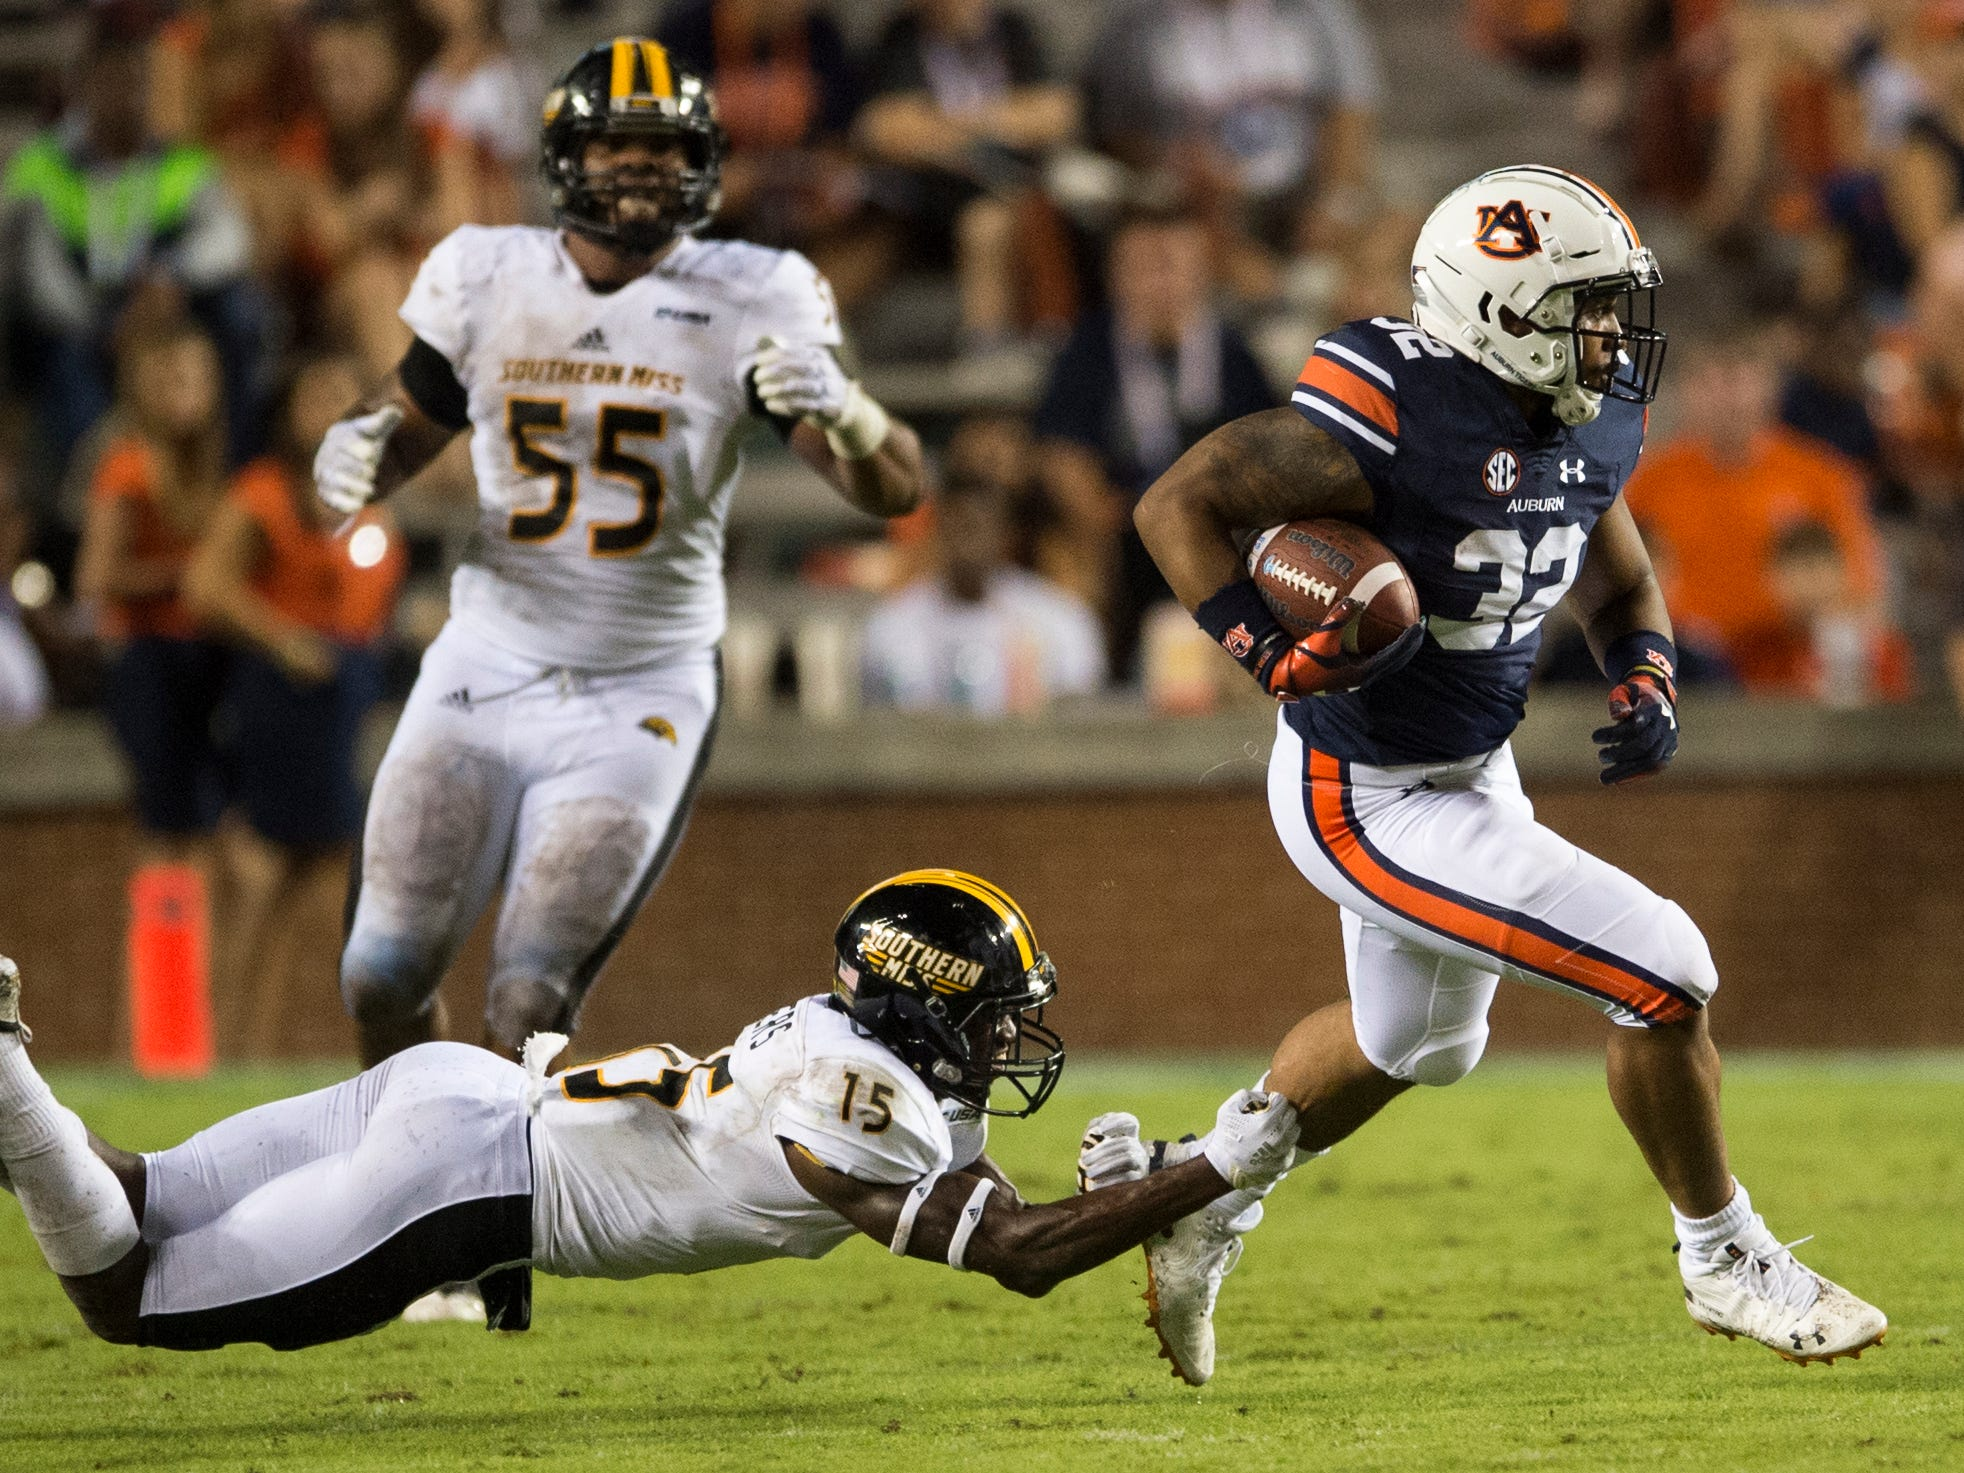 Auburn's Malik Miller (32) avoids Southern Miss' Shannon Showers (15) as he breaks a run at Jordan-Hare Stadium in Auburn, Ala., on Saturday, Sept. 29, 2018. Auburn defeated  Southern Miss 24-13.